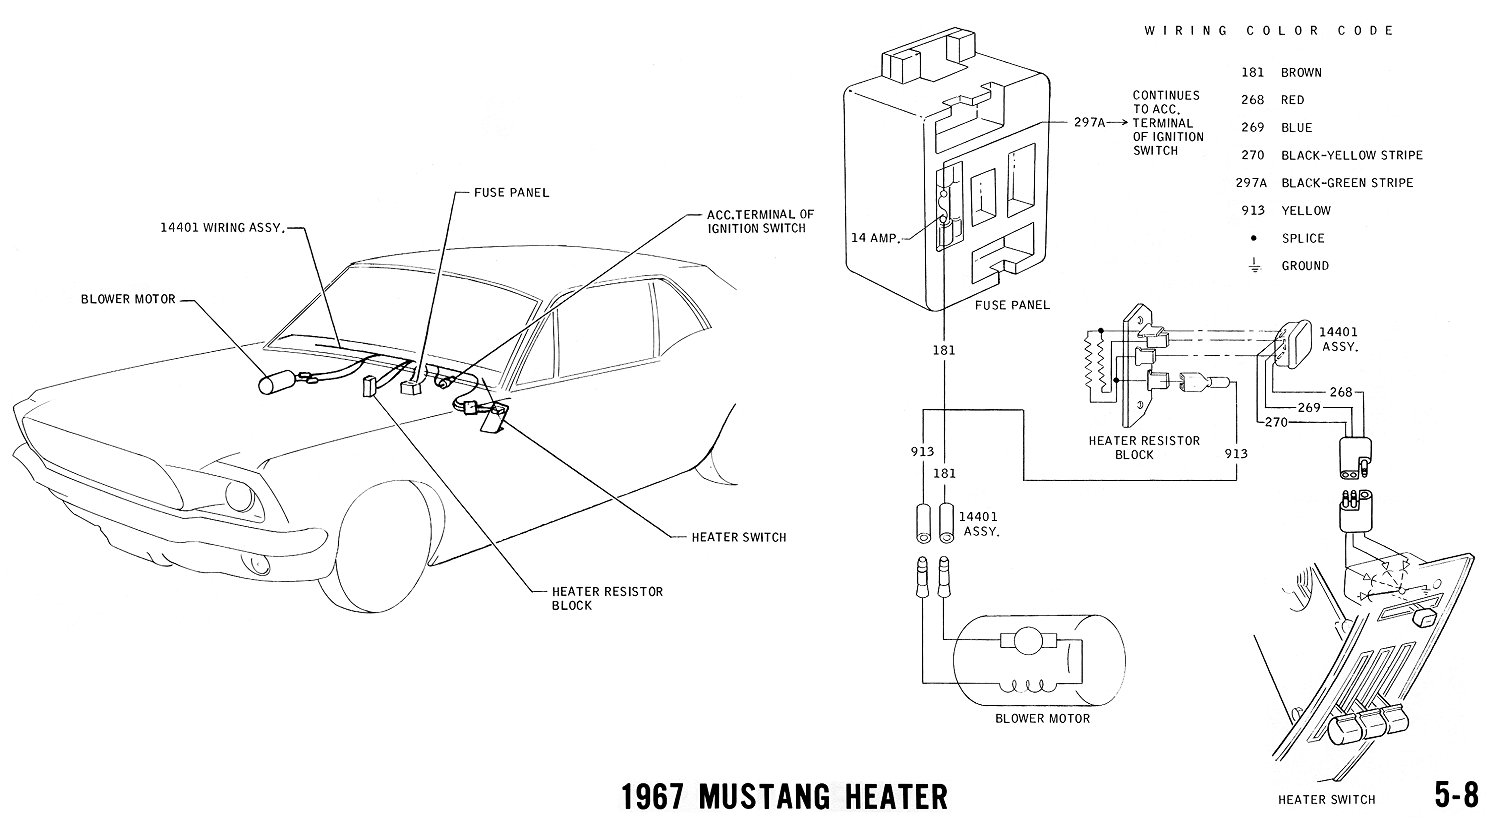 Ford Mustang Gt Fuse Box Diagram Besides 66 Mustang Wiring Diagram